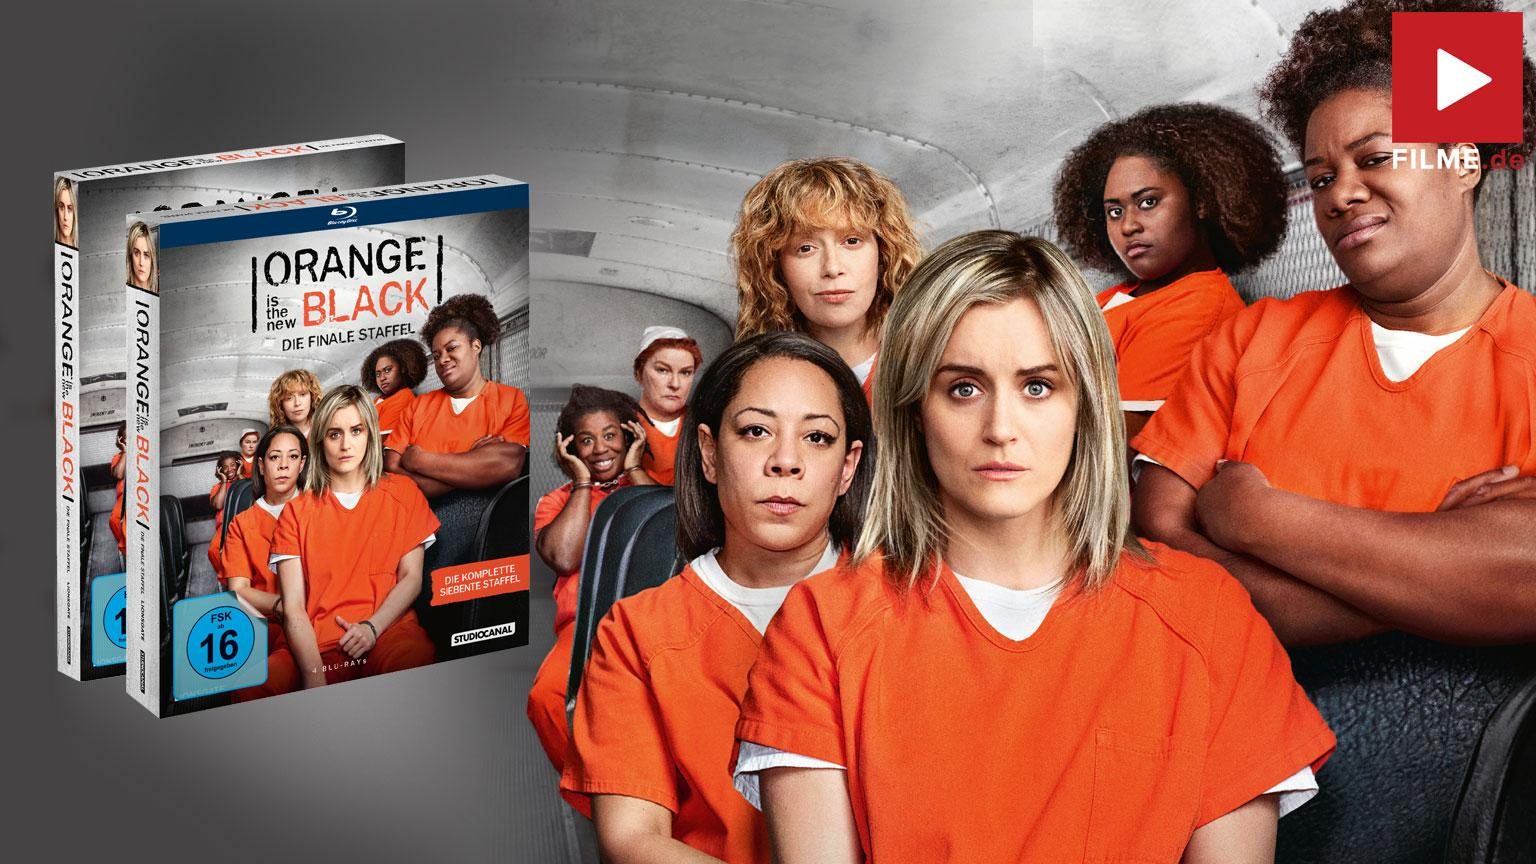 Orange is the New Black Staffel 7 Blu-ray DVD shop kaufen Gewinnspiel gewinnen Artikelbild